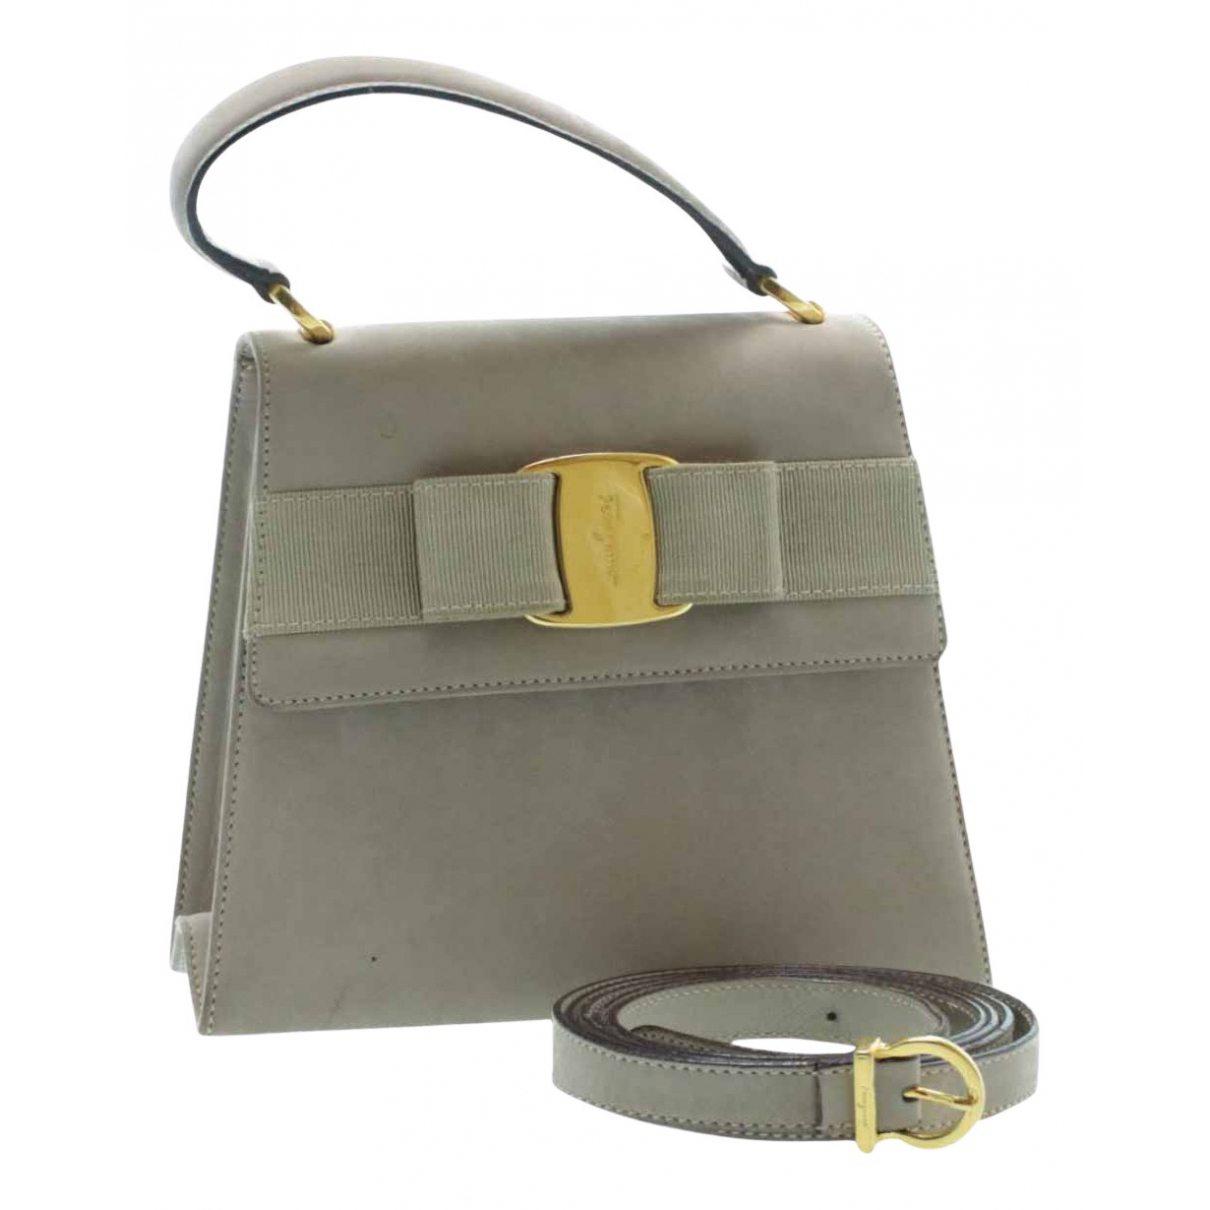 Salvatore Ferragamo N Grey Leather handbag for Women N